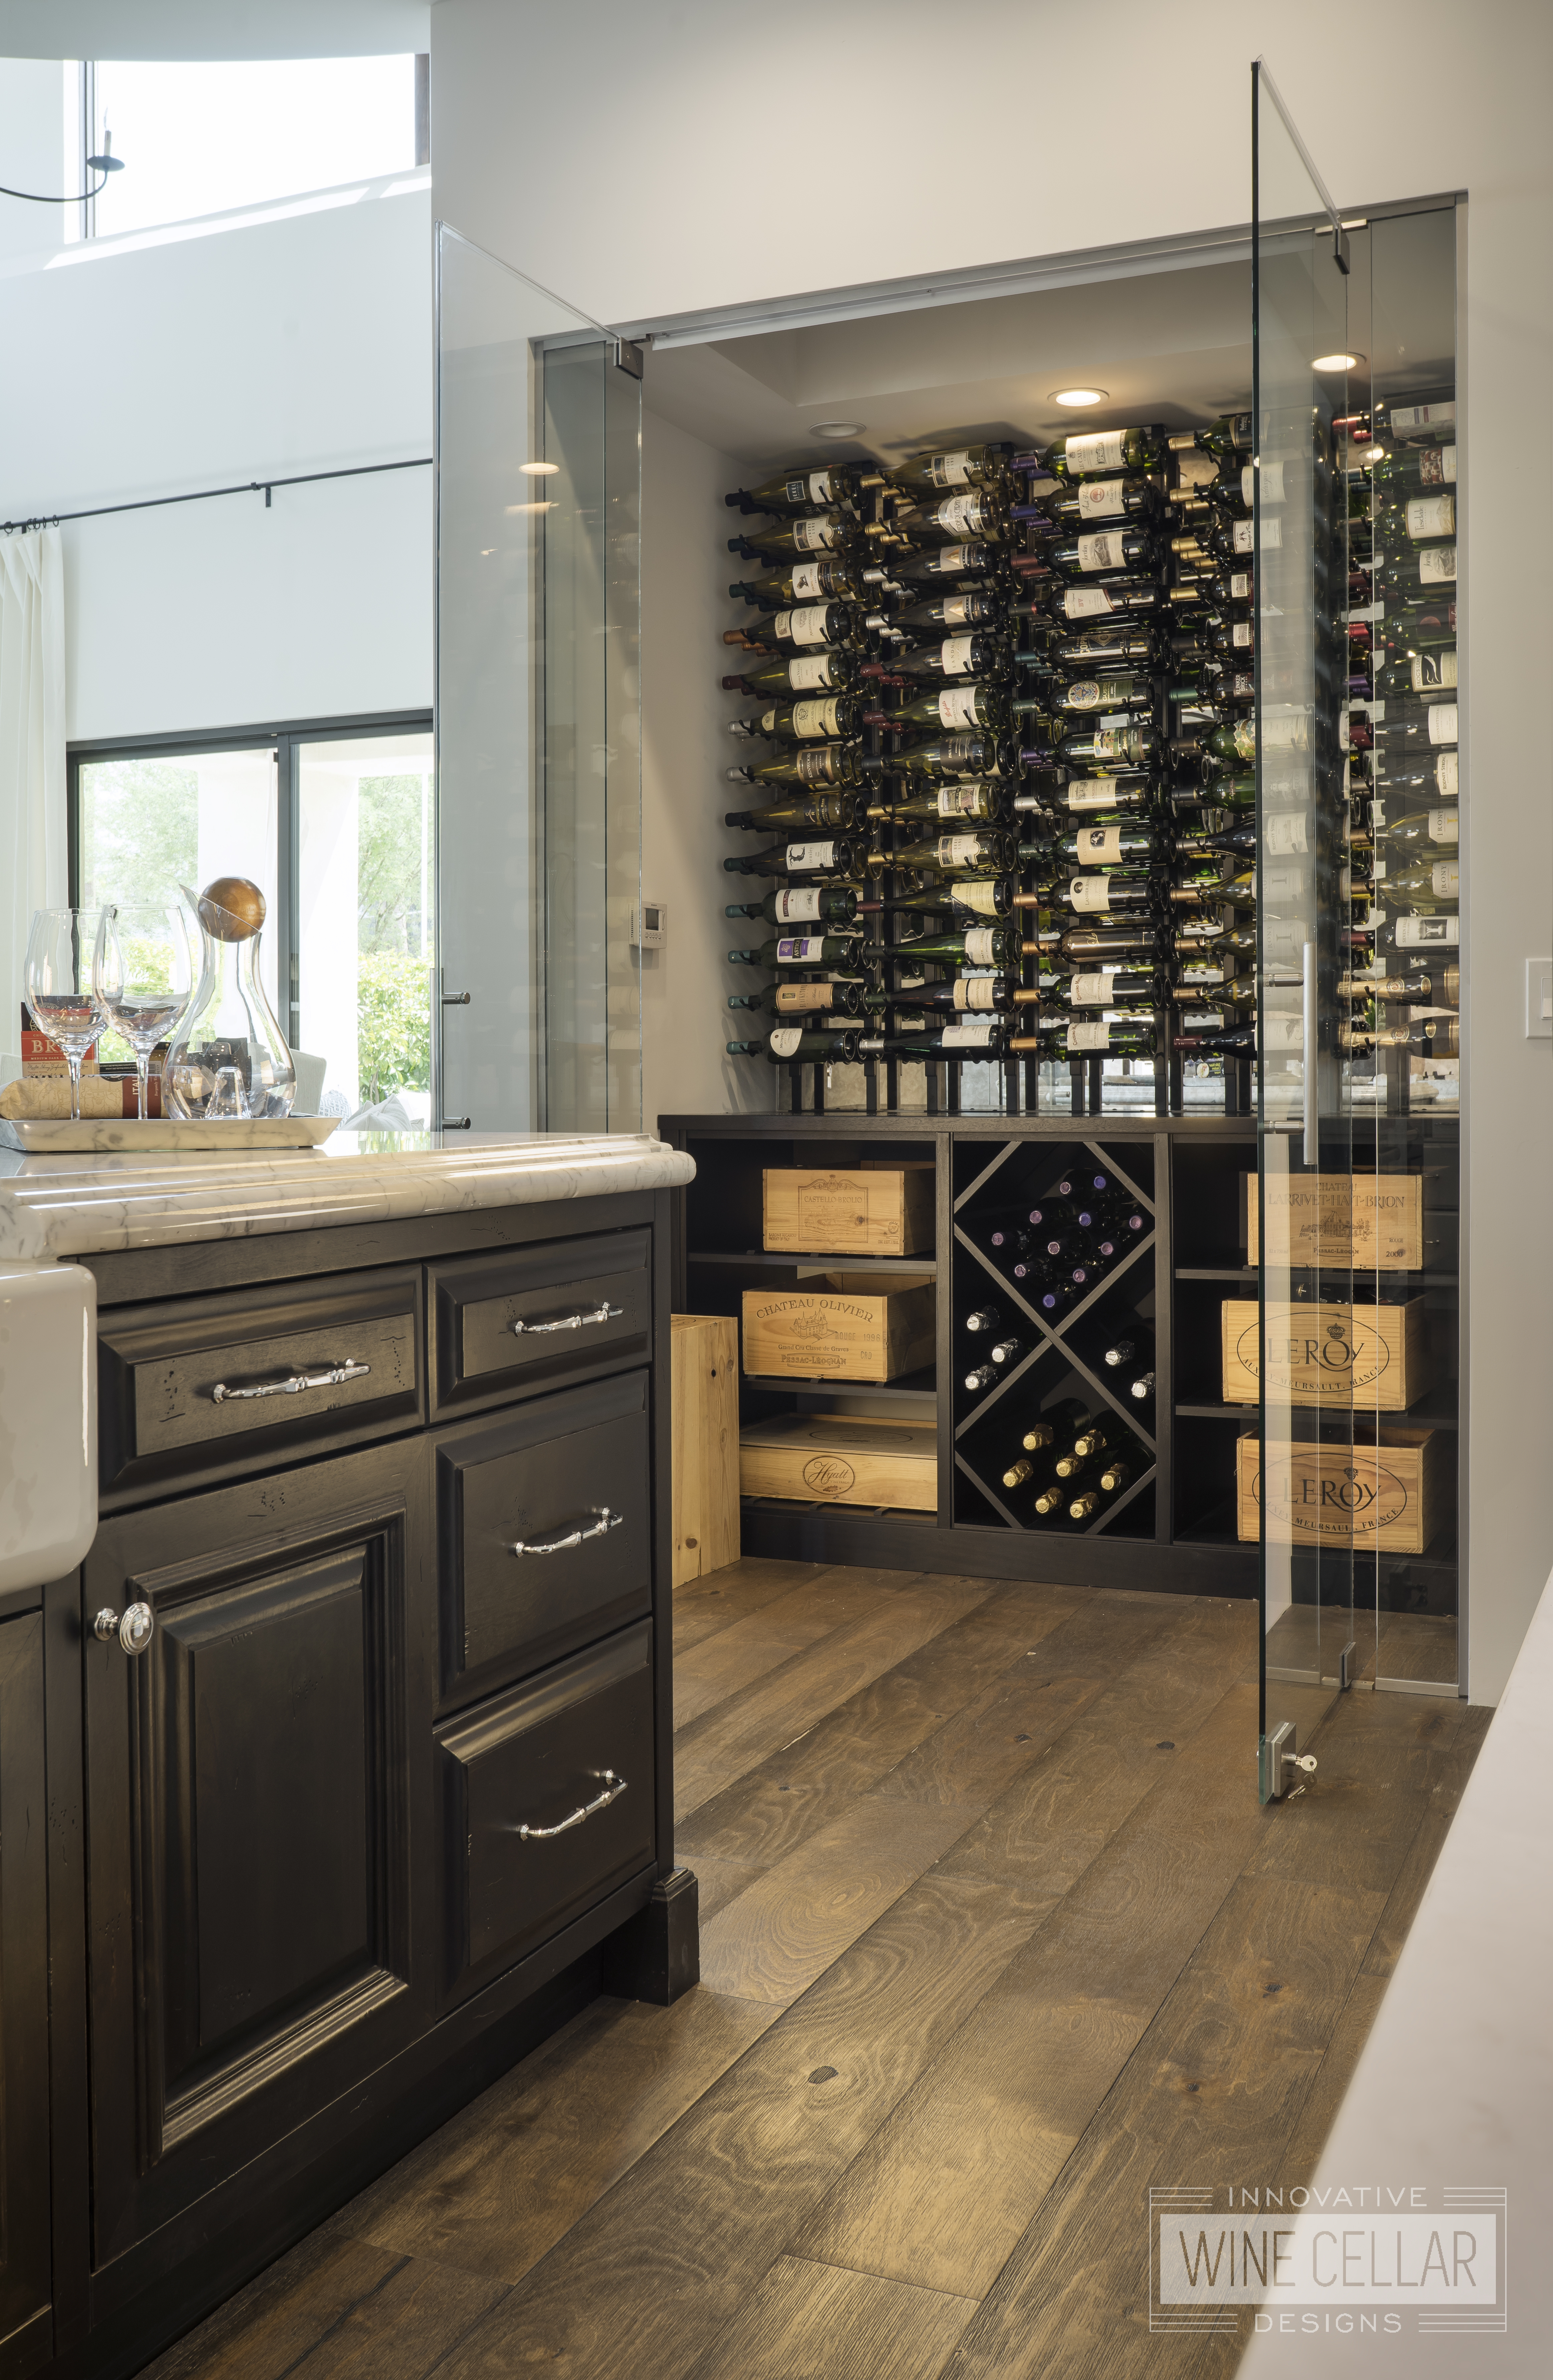 Contemporary & Modern Design | Innovative Wine Cellar Designs